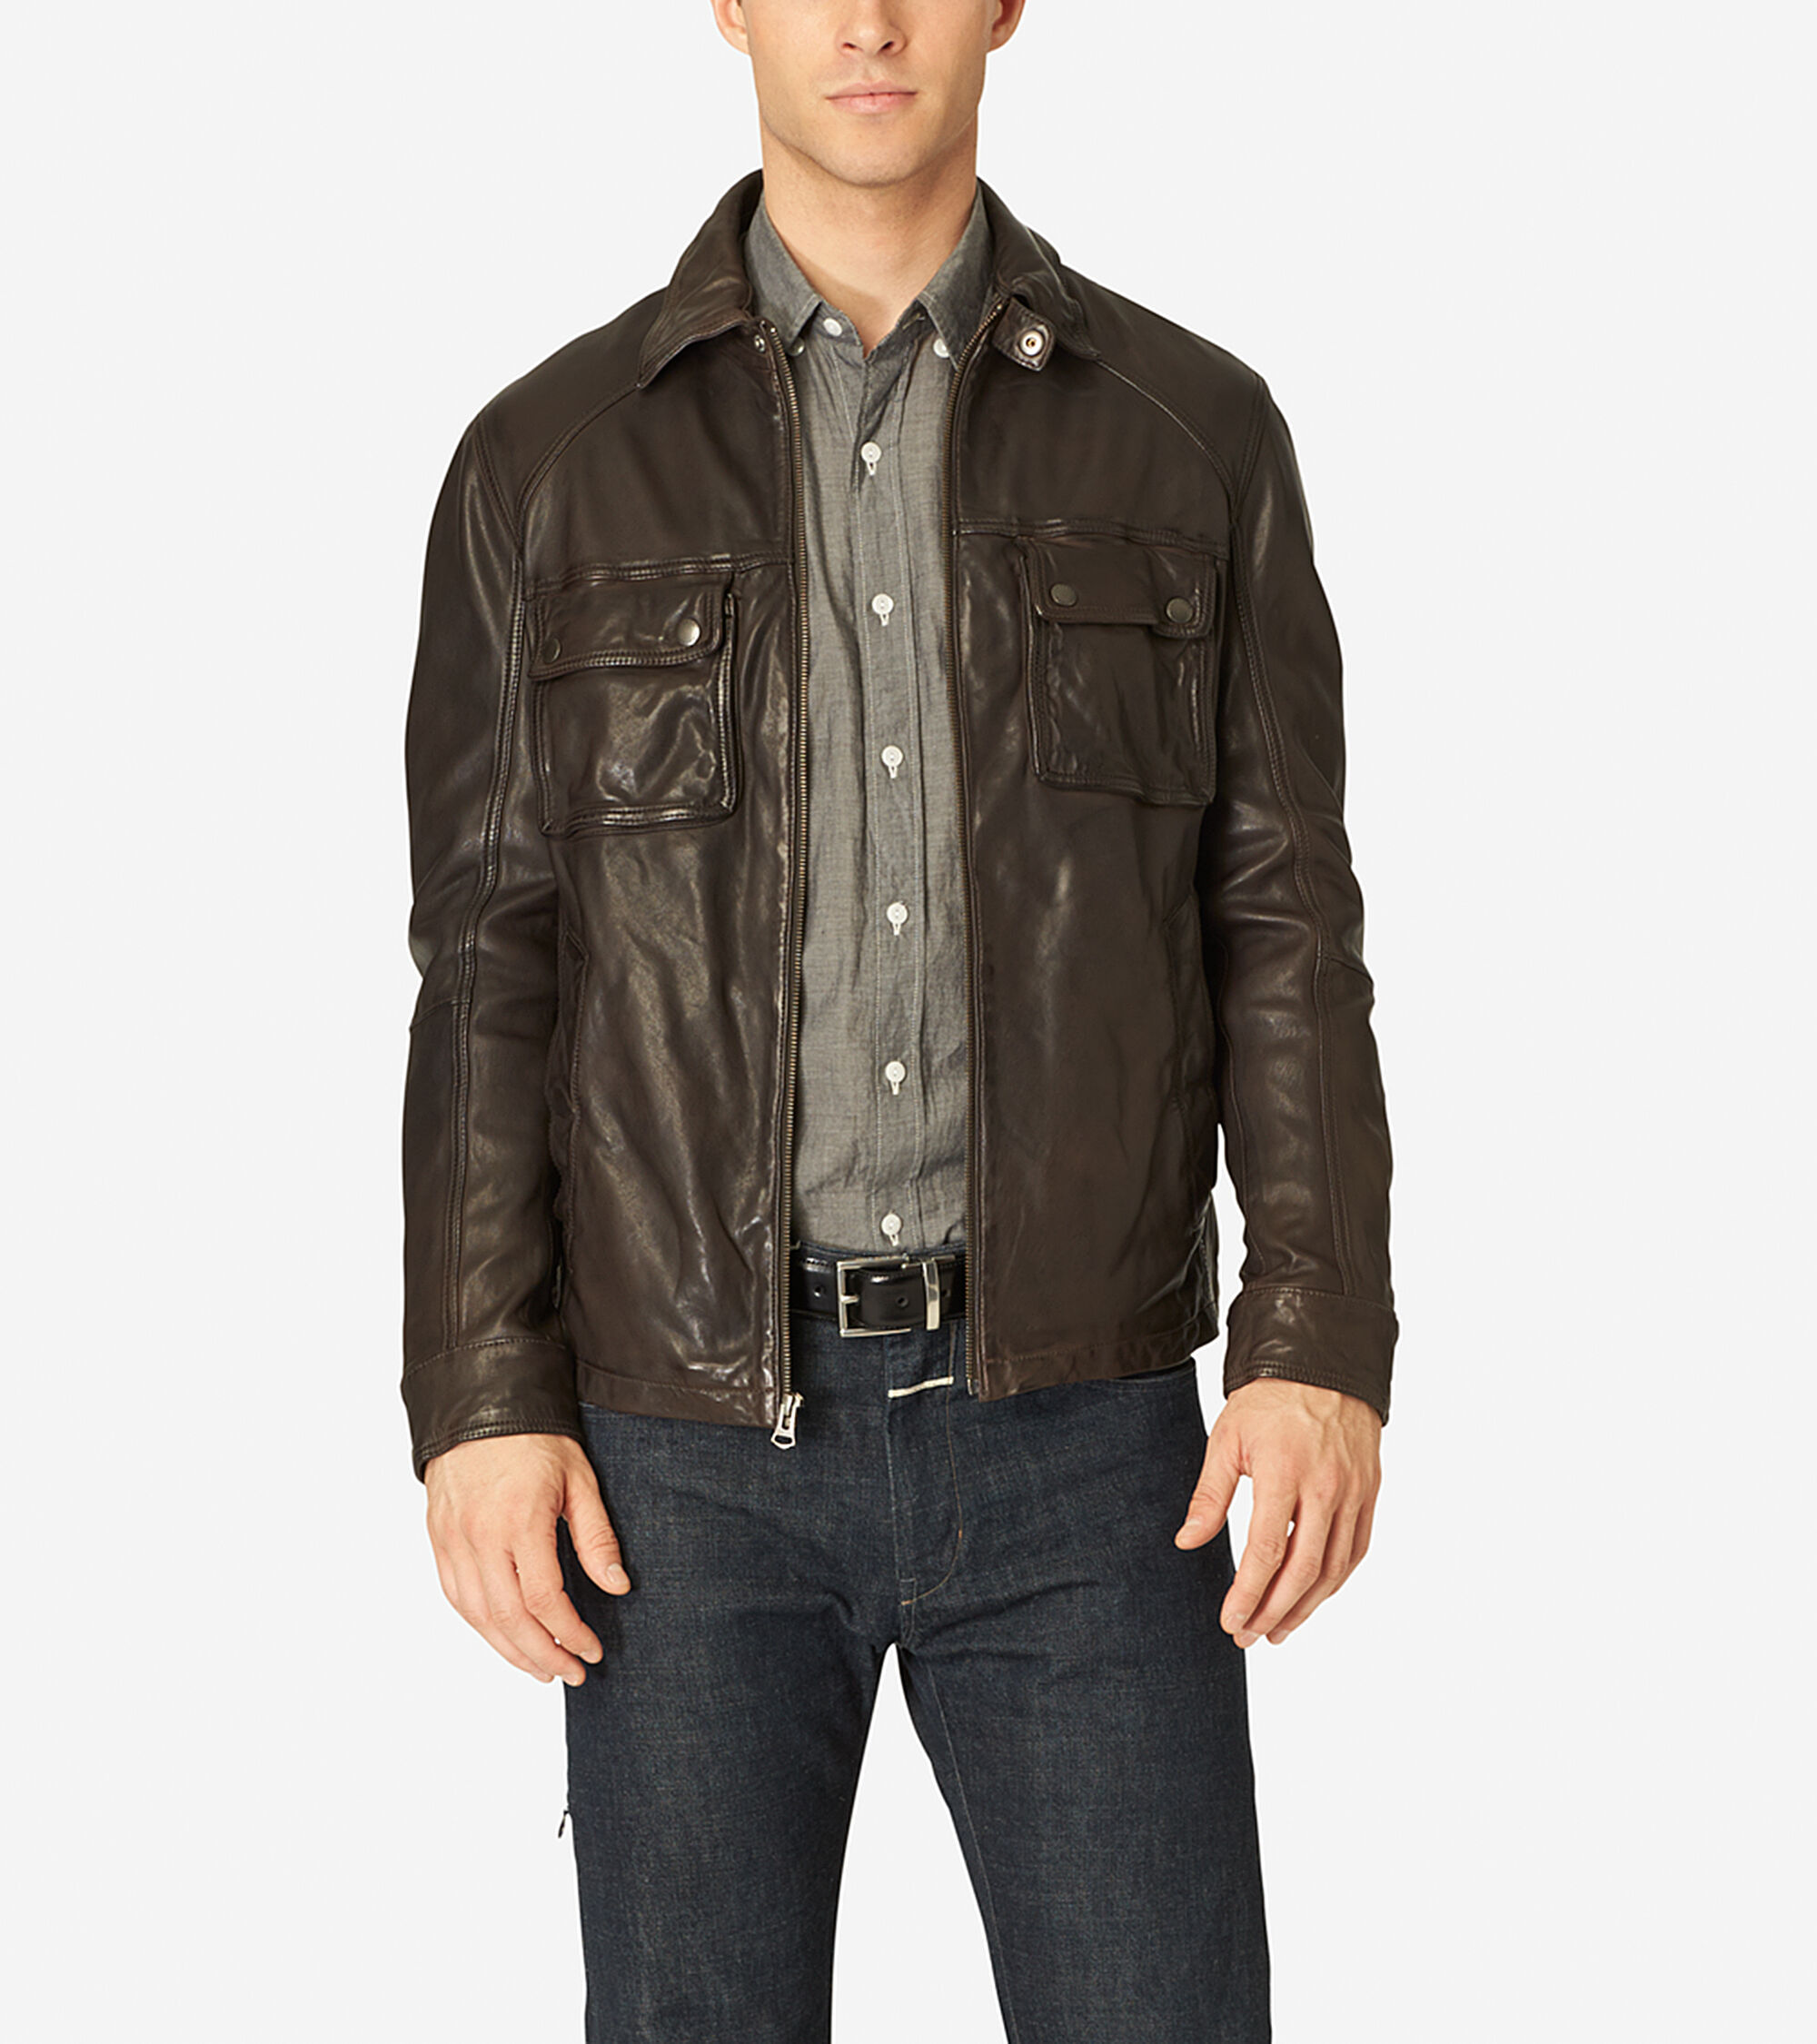 Men 39 s vintage leather shirt collar jacket in java cole haan for Leather jacket and shirt